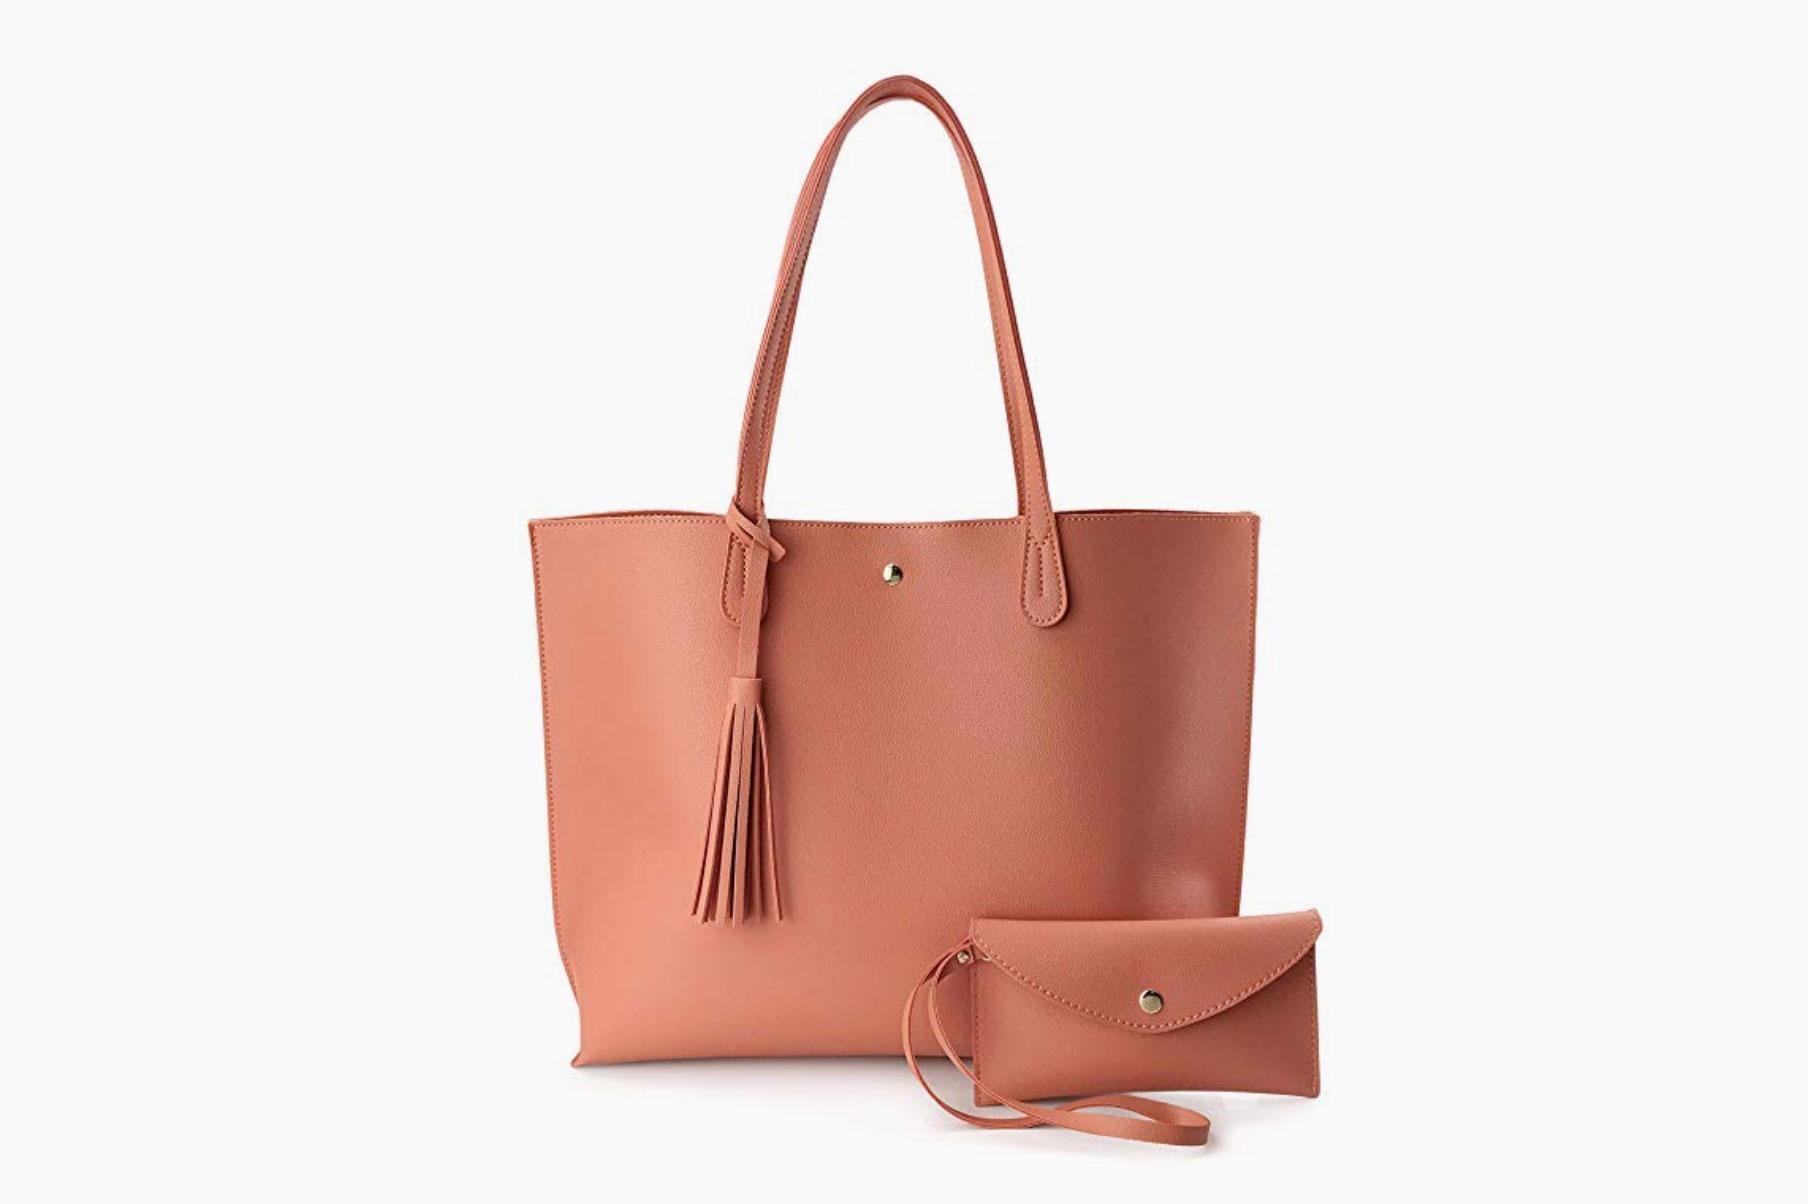 Hoxis Minimalist Faux Leather Tote